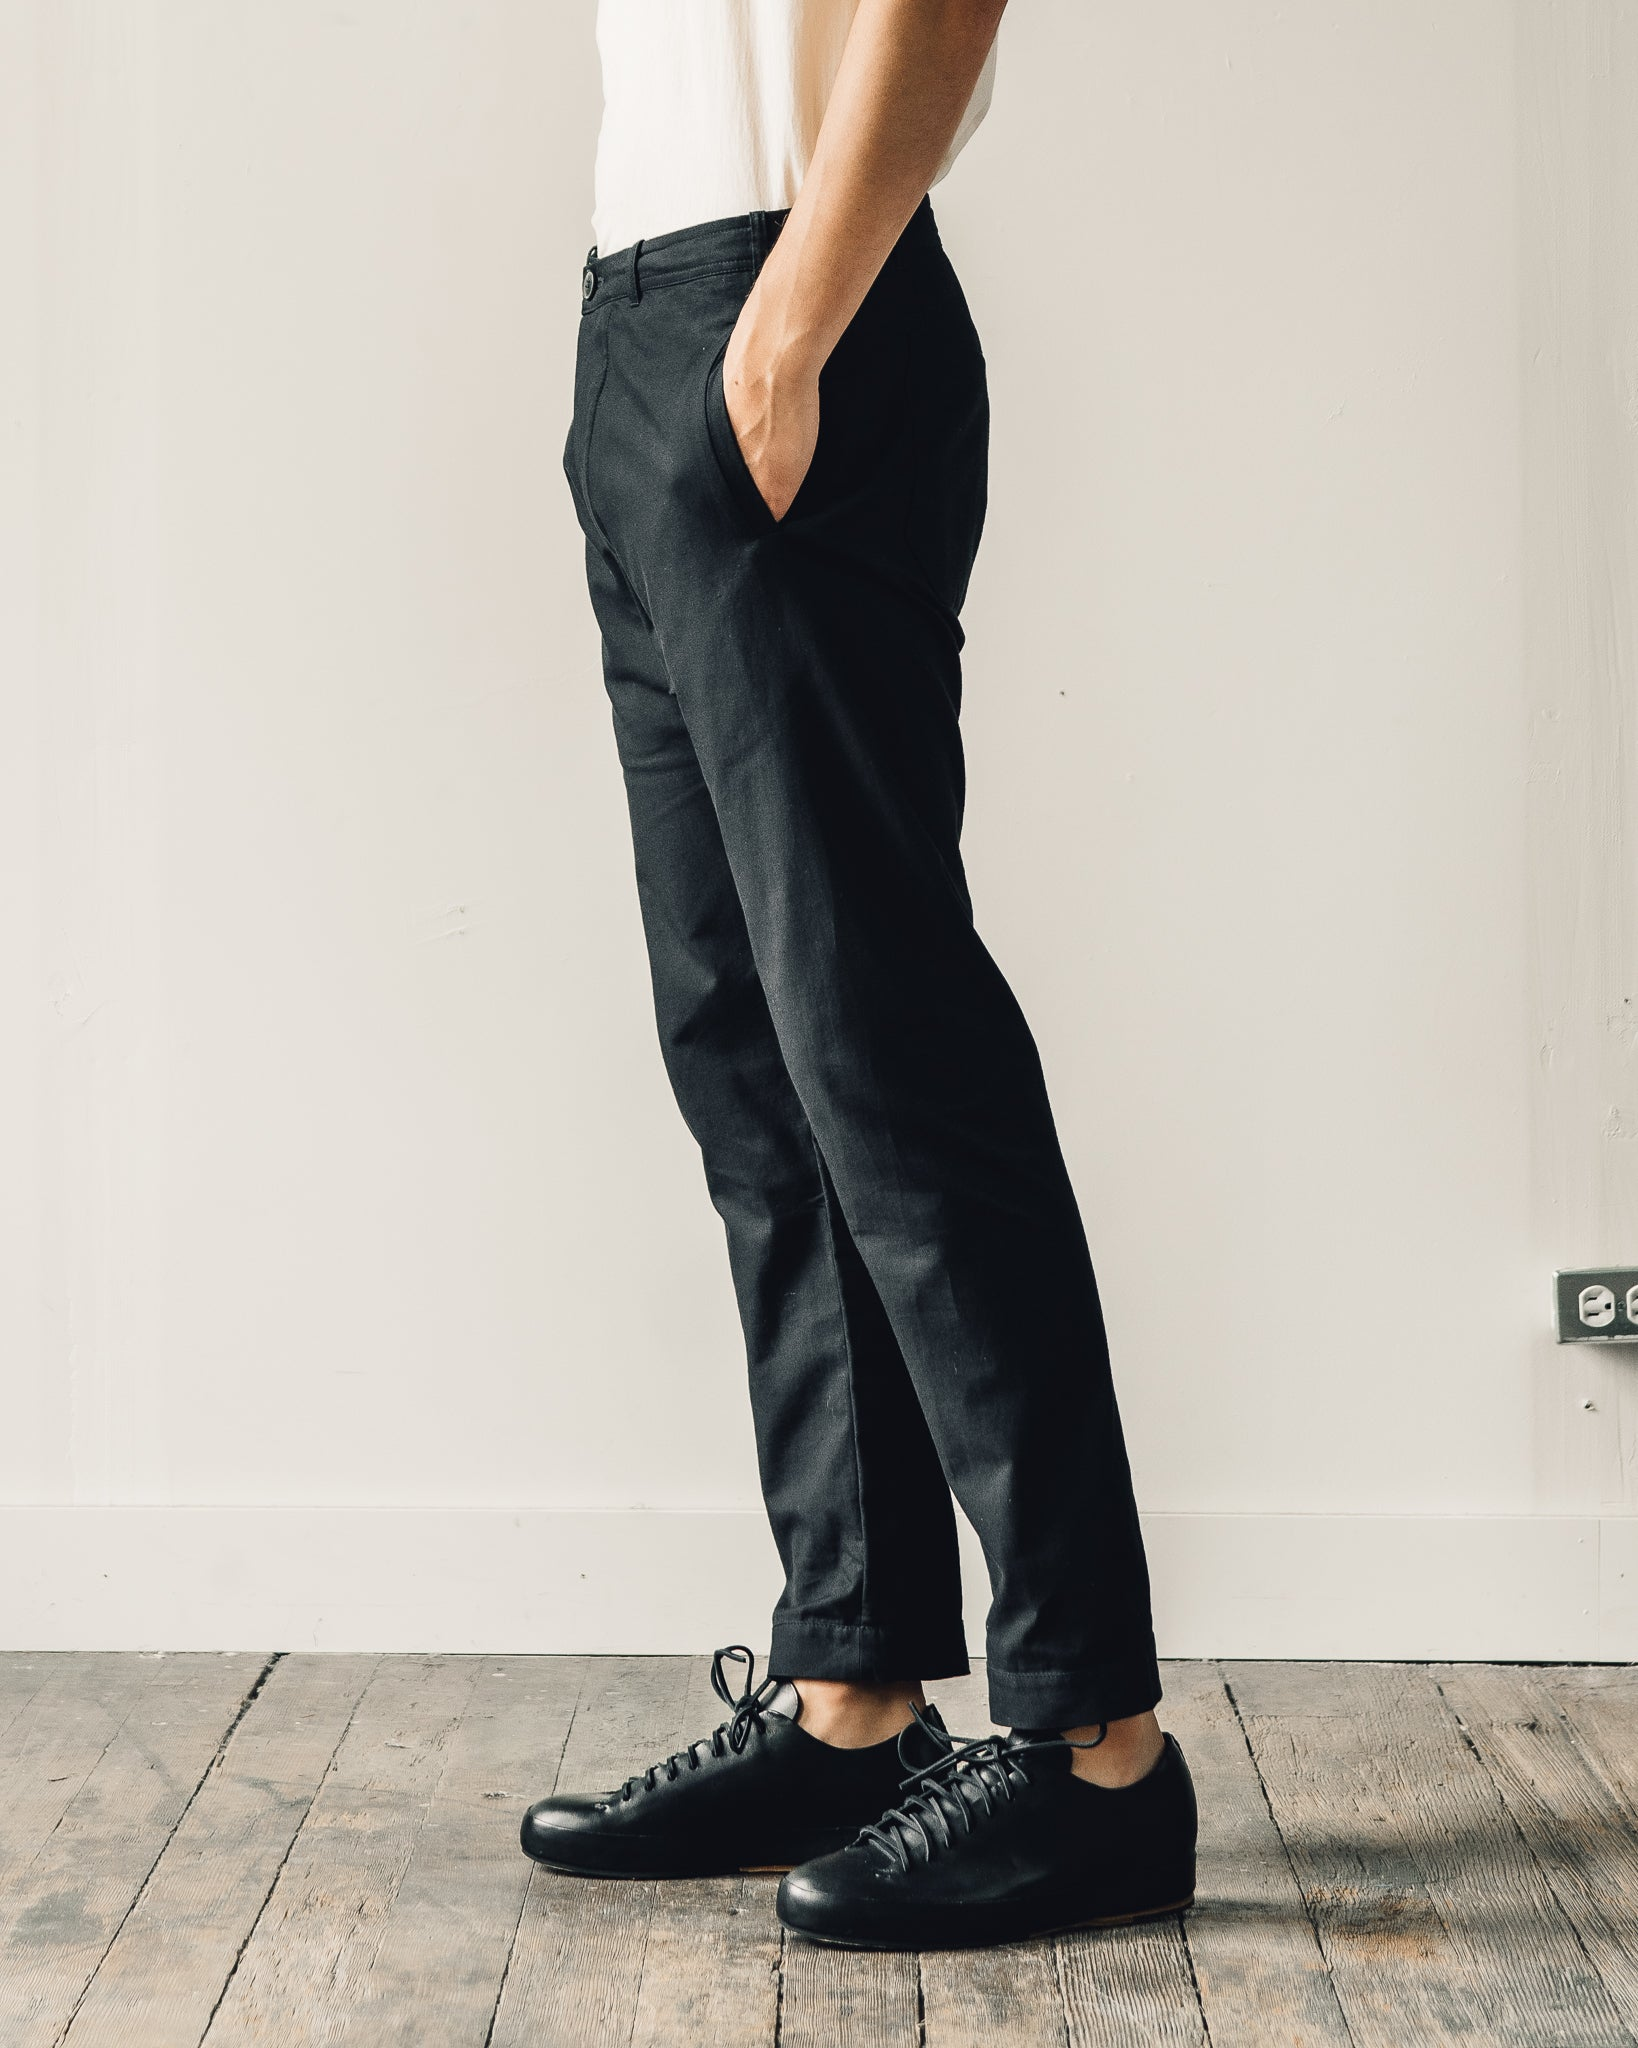 Jan-Jan Van Essche Trousers #49, Black Soft Twill